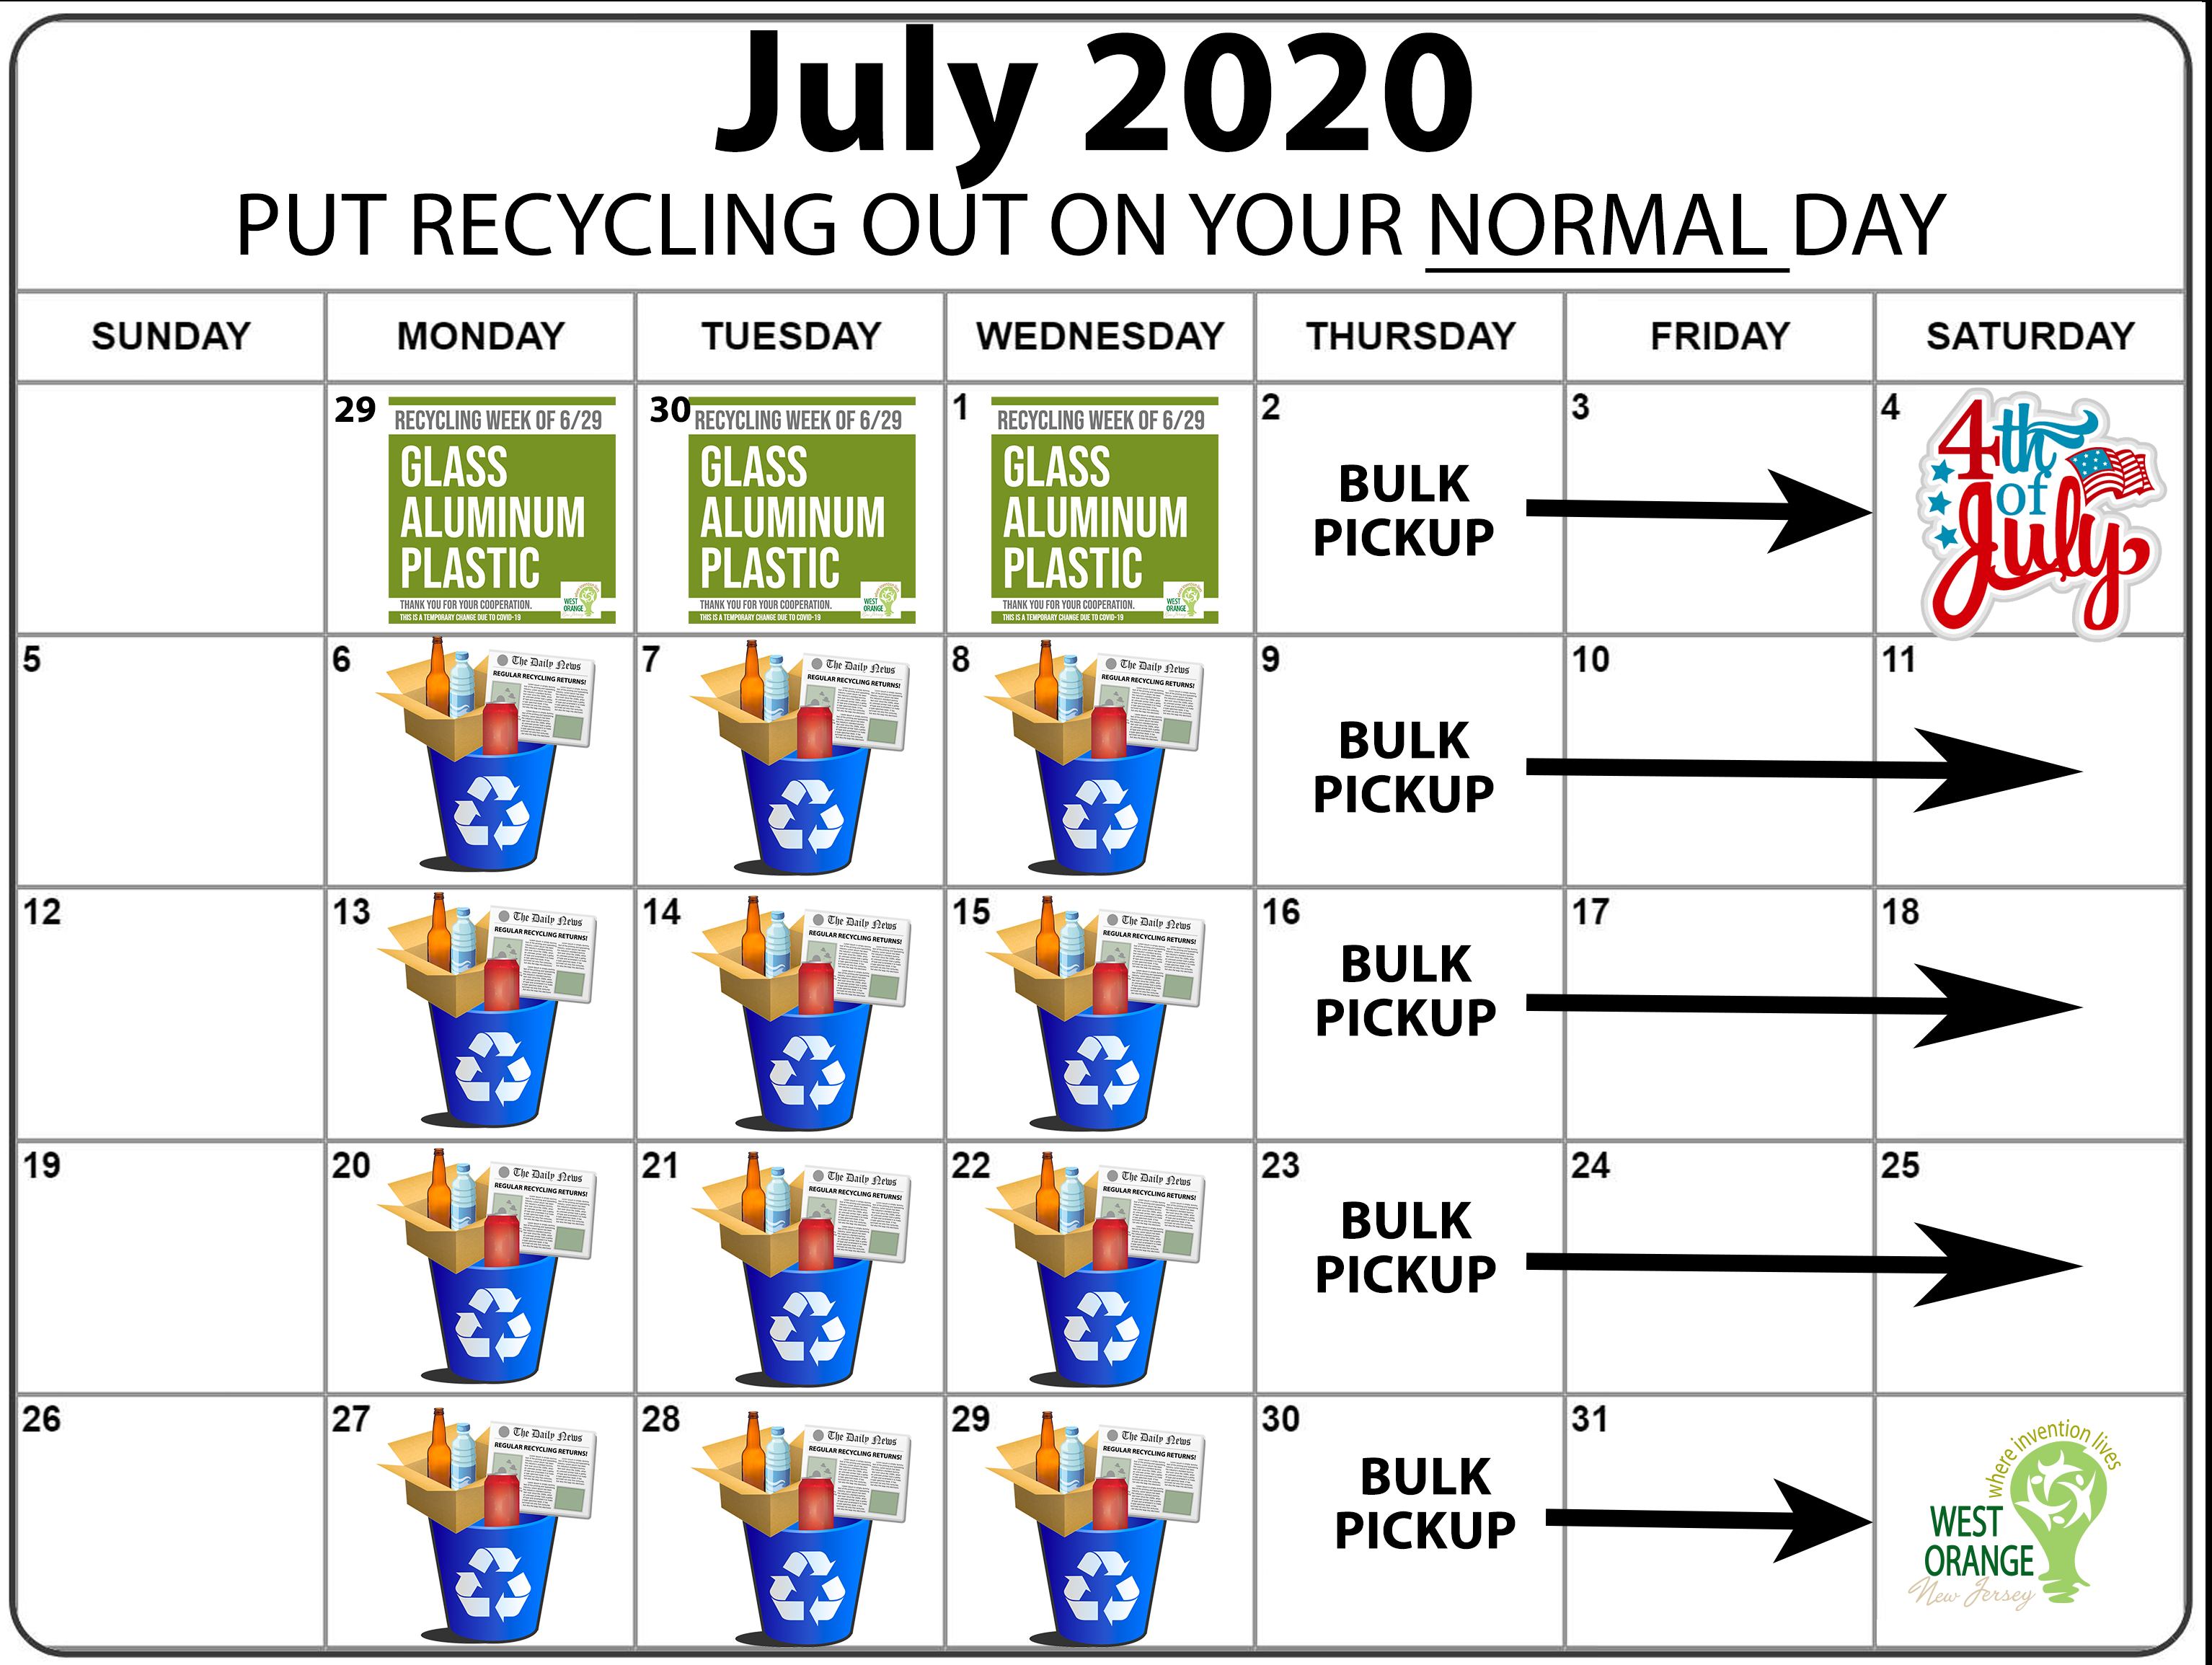 July 2020 WO Recycling